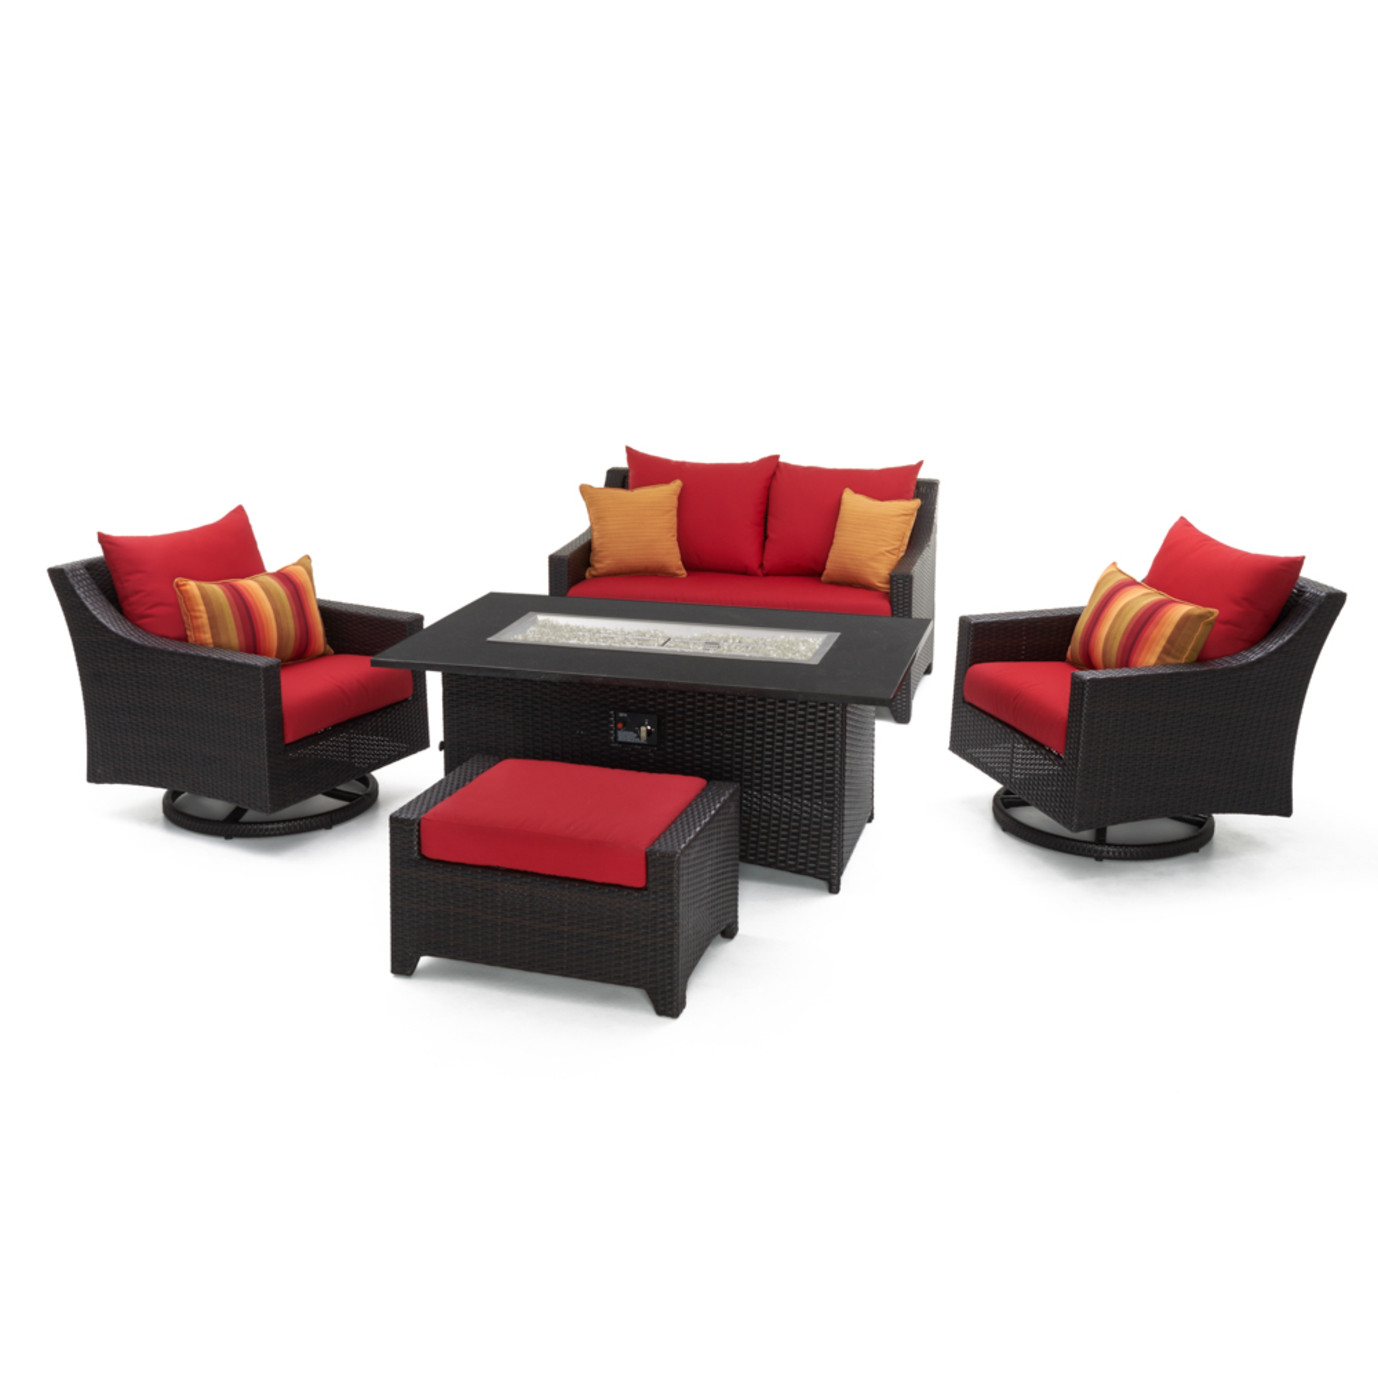 Deco™ 5 Piece Love & Motion Club Fire Set - Sunset Red